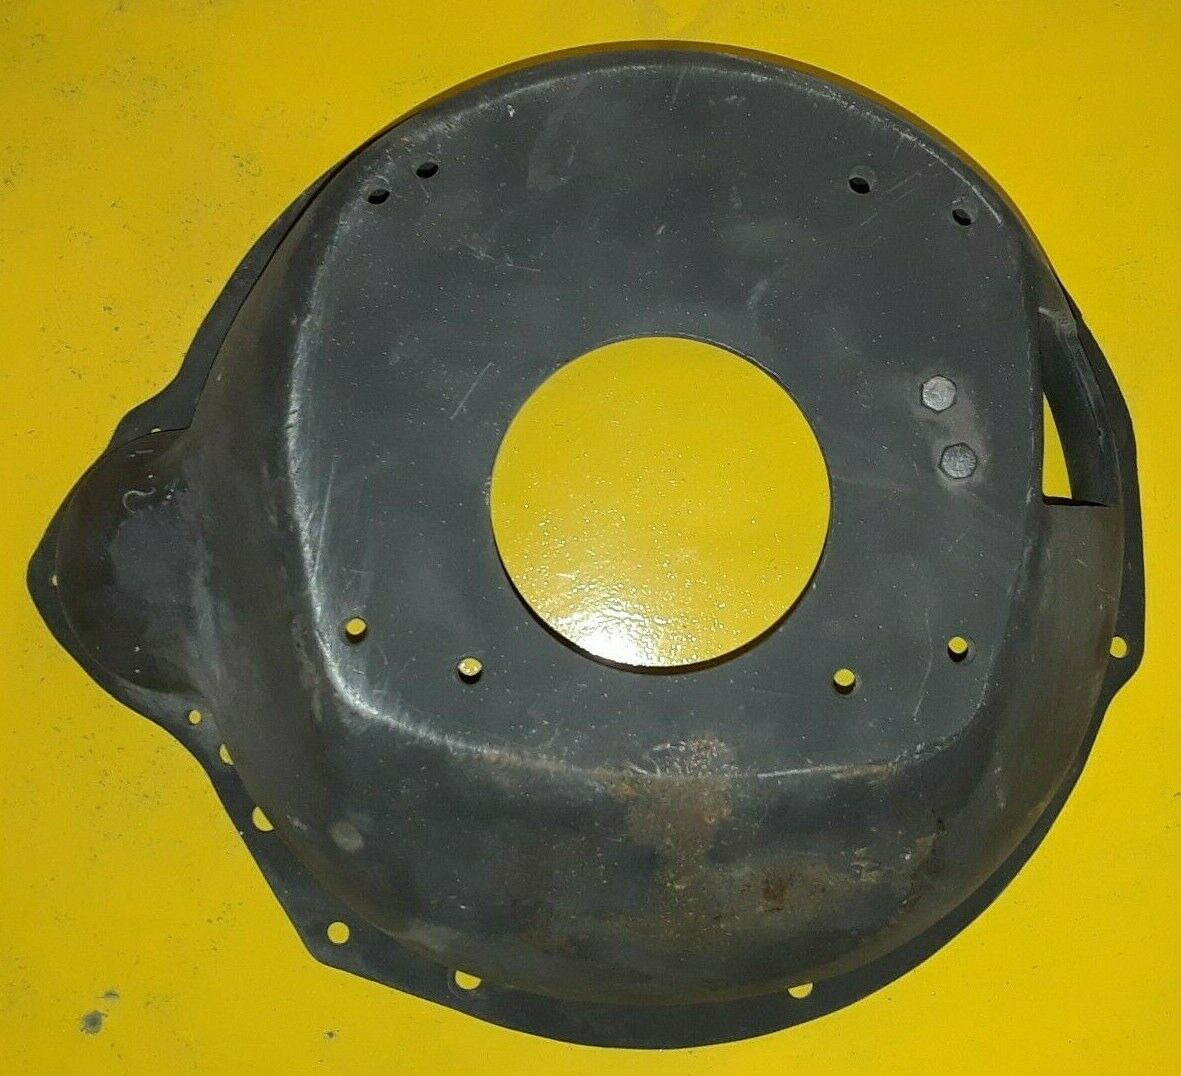 FORD 427 / 428 / 390 ENGINES Scatter Shield Blow Proof Bell Housing  Does not apply